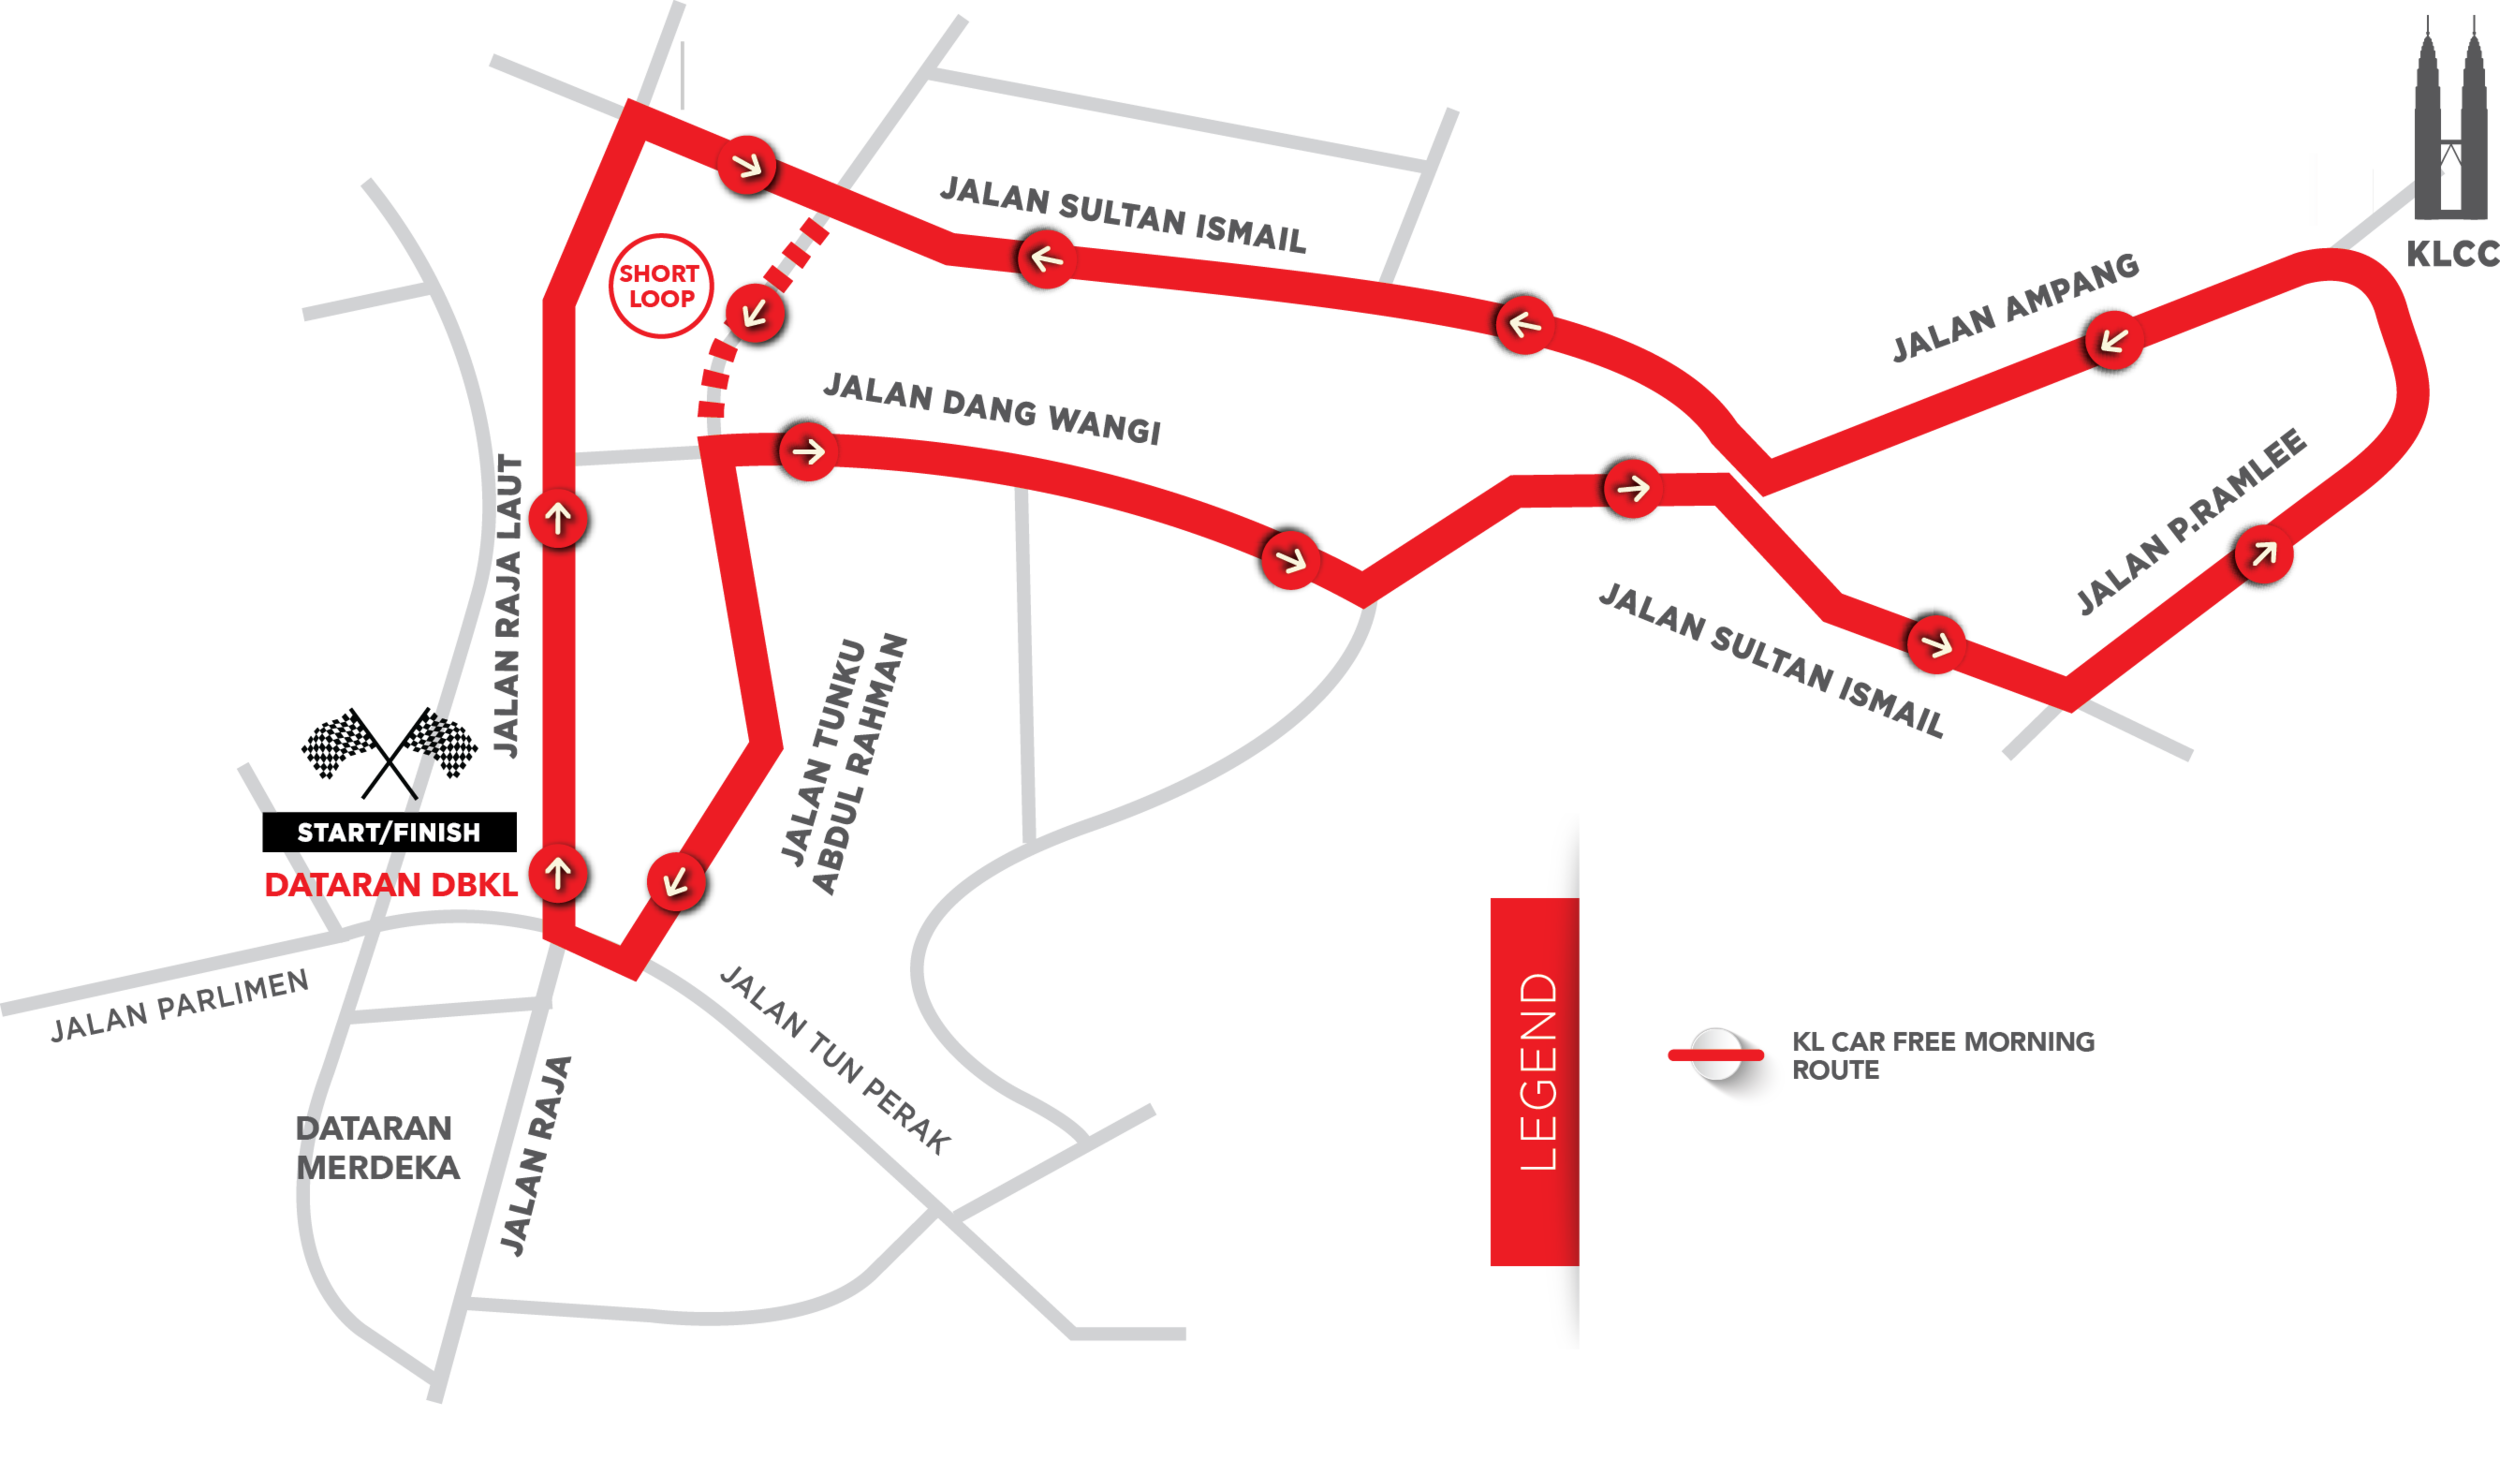 The official KL Car Free route. Source: www.klcarfreemorning.com